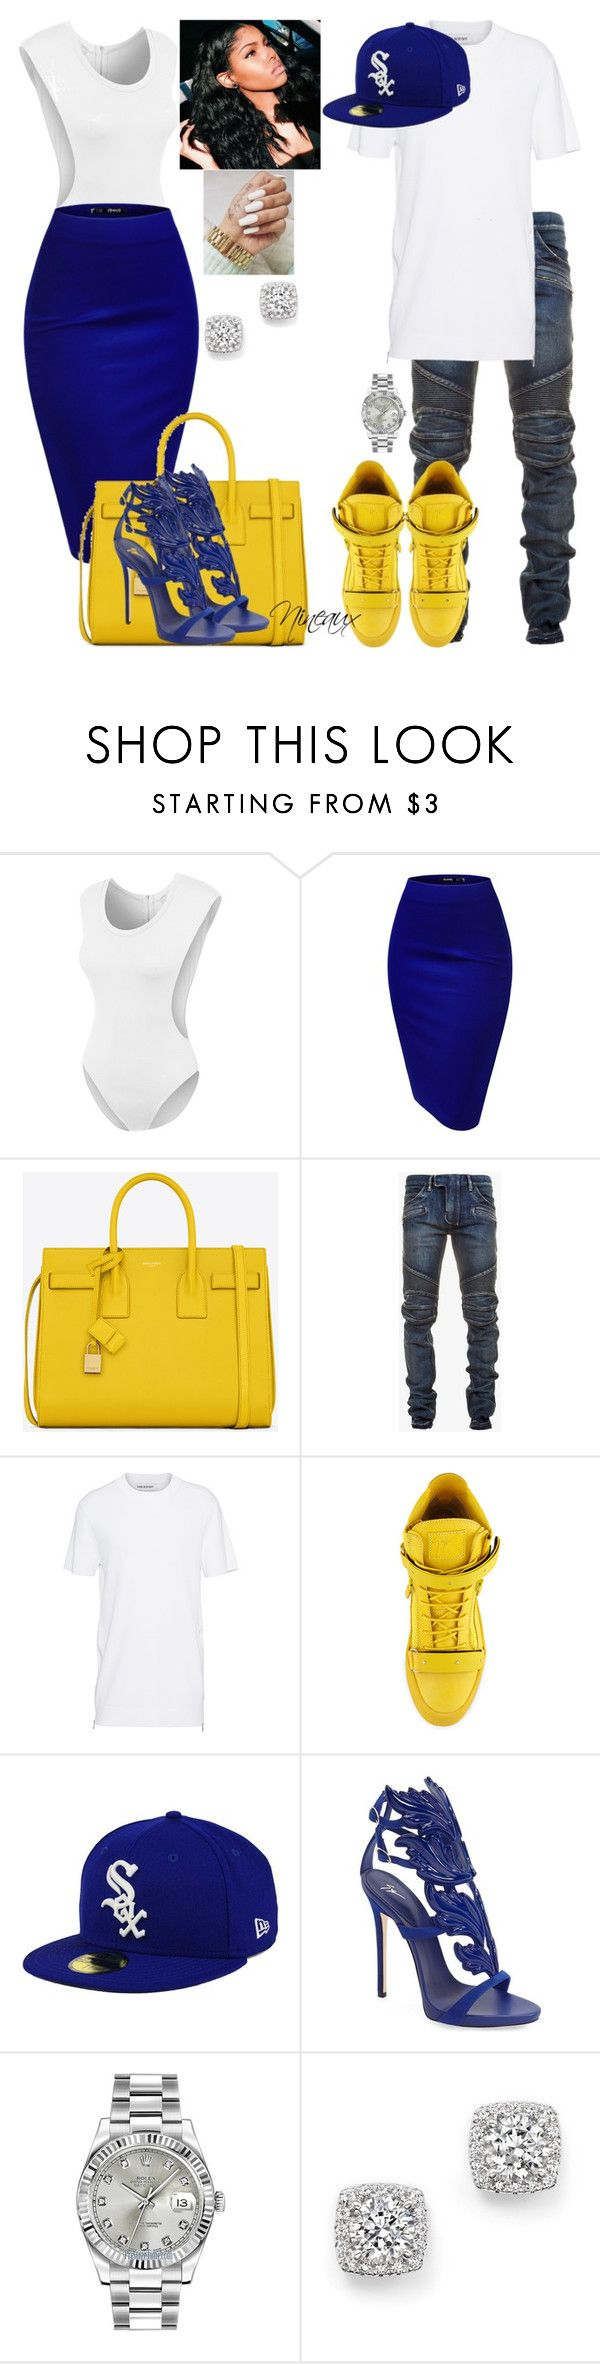 """""""Untitled."""" by styledbynineaux ❤ liked on Polyvore featuring LE3NO, Yves Saint Laurent, Balmain, Neil Barrett, Giuseppe Zanotti, New Era, Rolex and Bloomingdale's"""